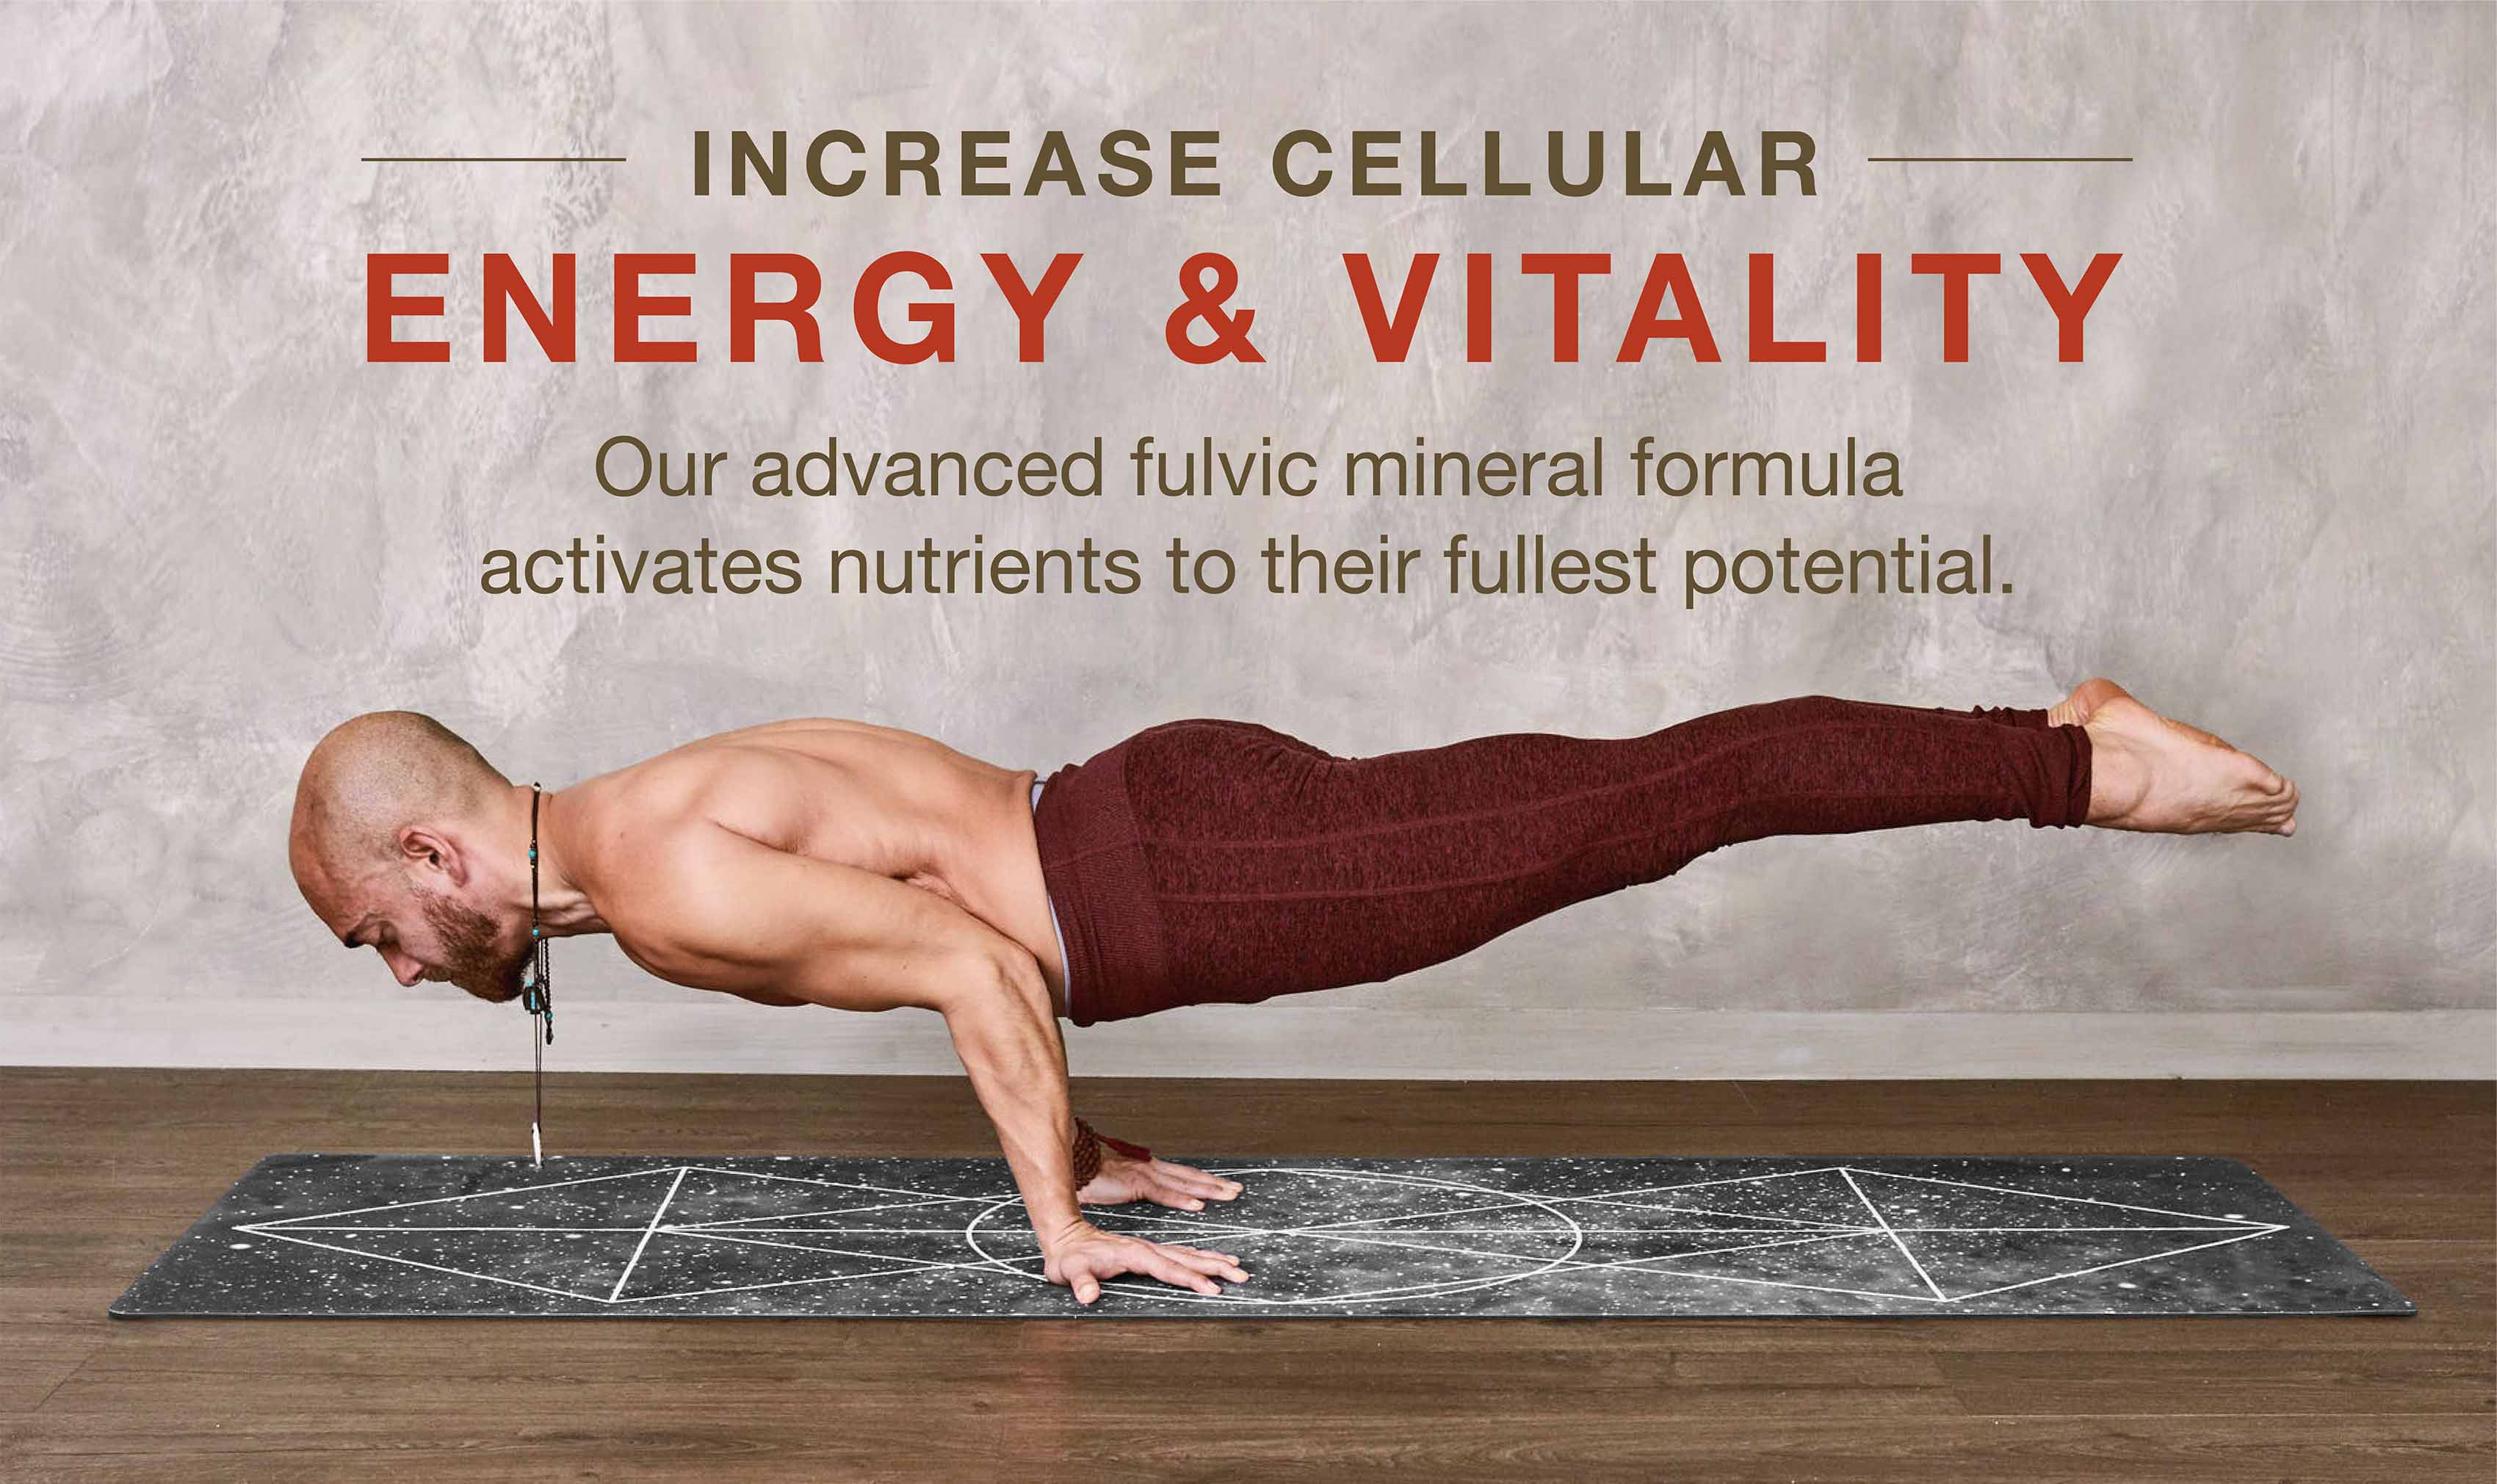 Increasing cellular energy and vitality, our advanced fulvic mineral formula activates nutrients to their fullest potential.